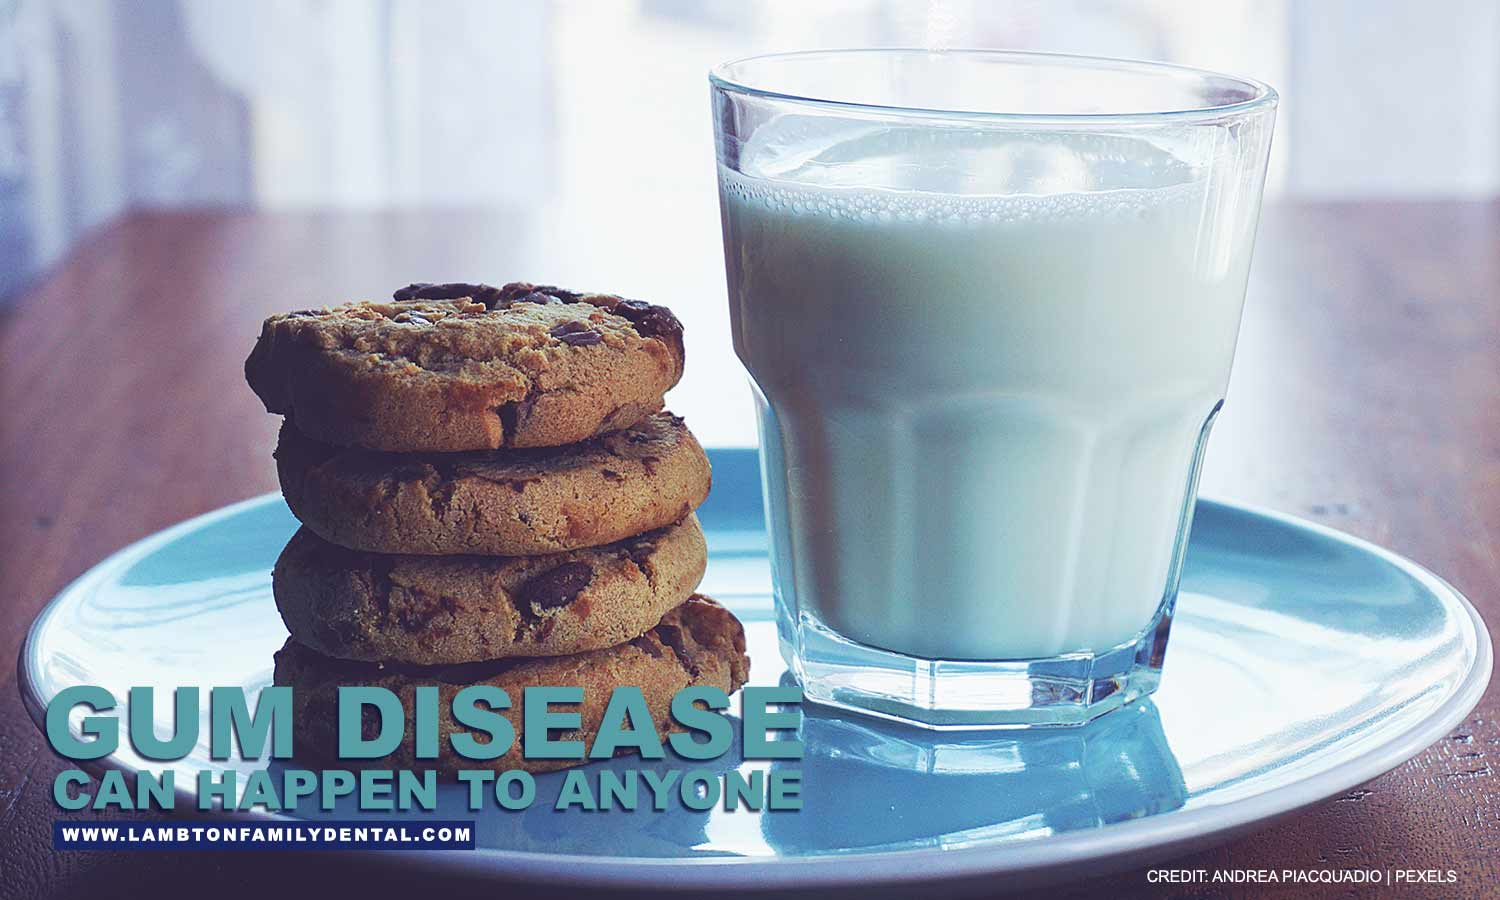 Milk is can help prevent gum disease